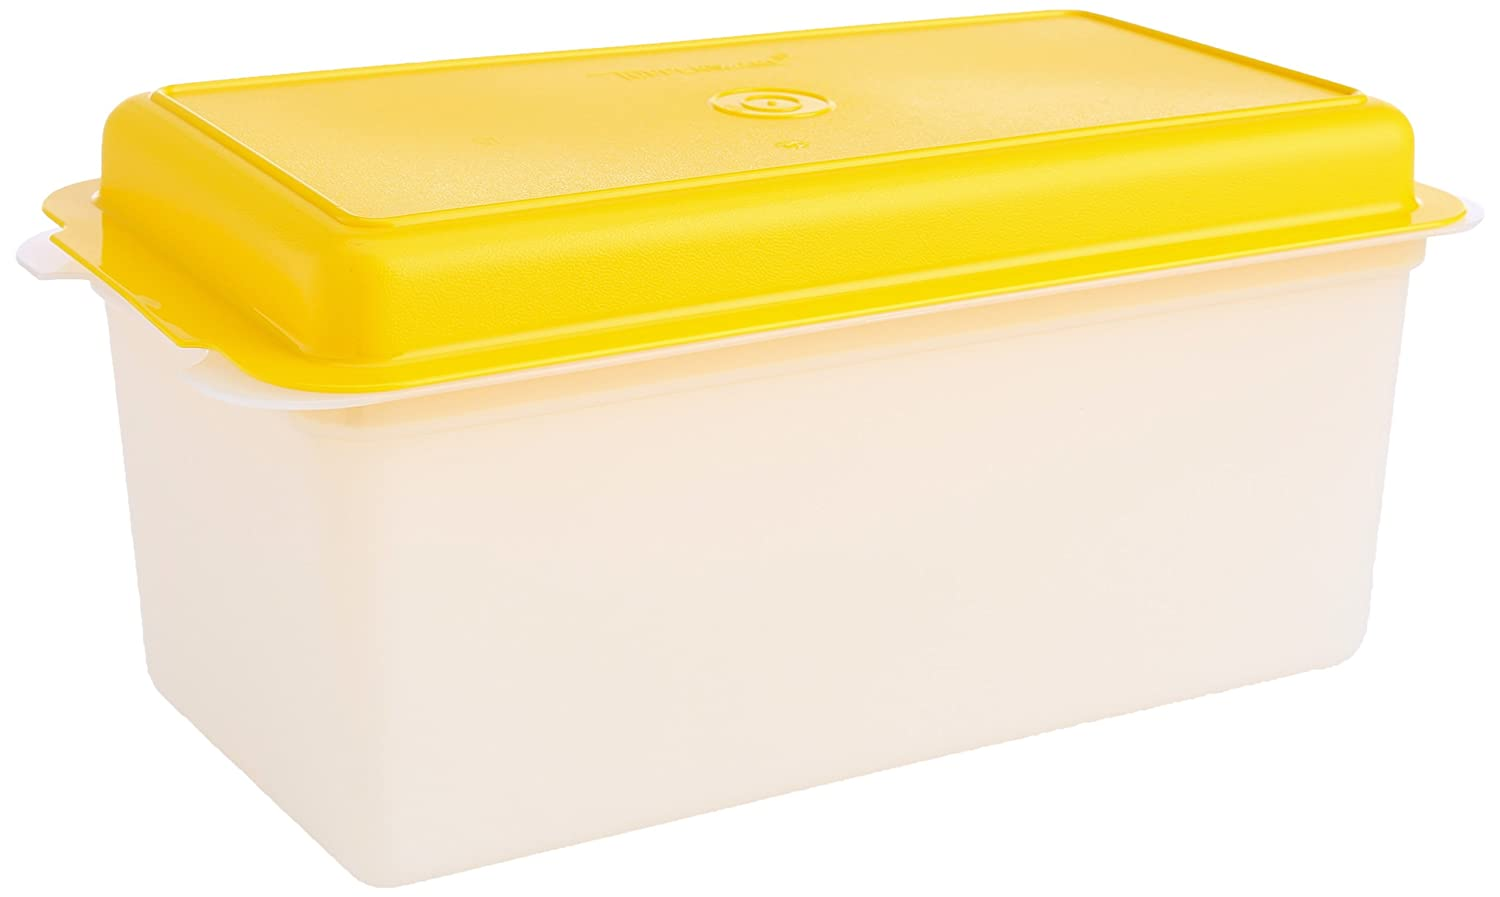 Ordinaire Amazon.com: TP 515 T178 Tupperware Bread Server For Keeping Bread Loaves  Fresh On The Counter And Ready For Table Serving: Kitchen U0026 Dining